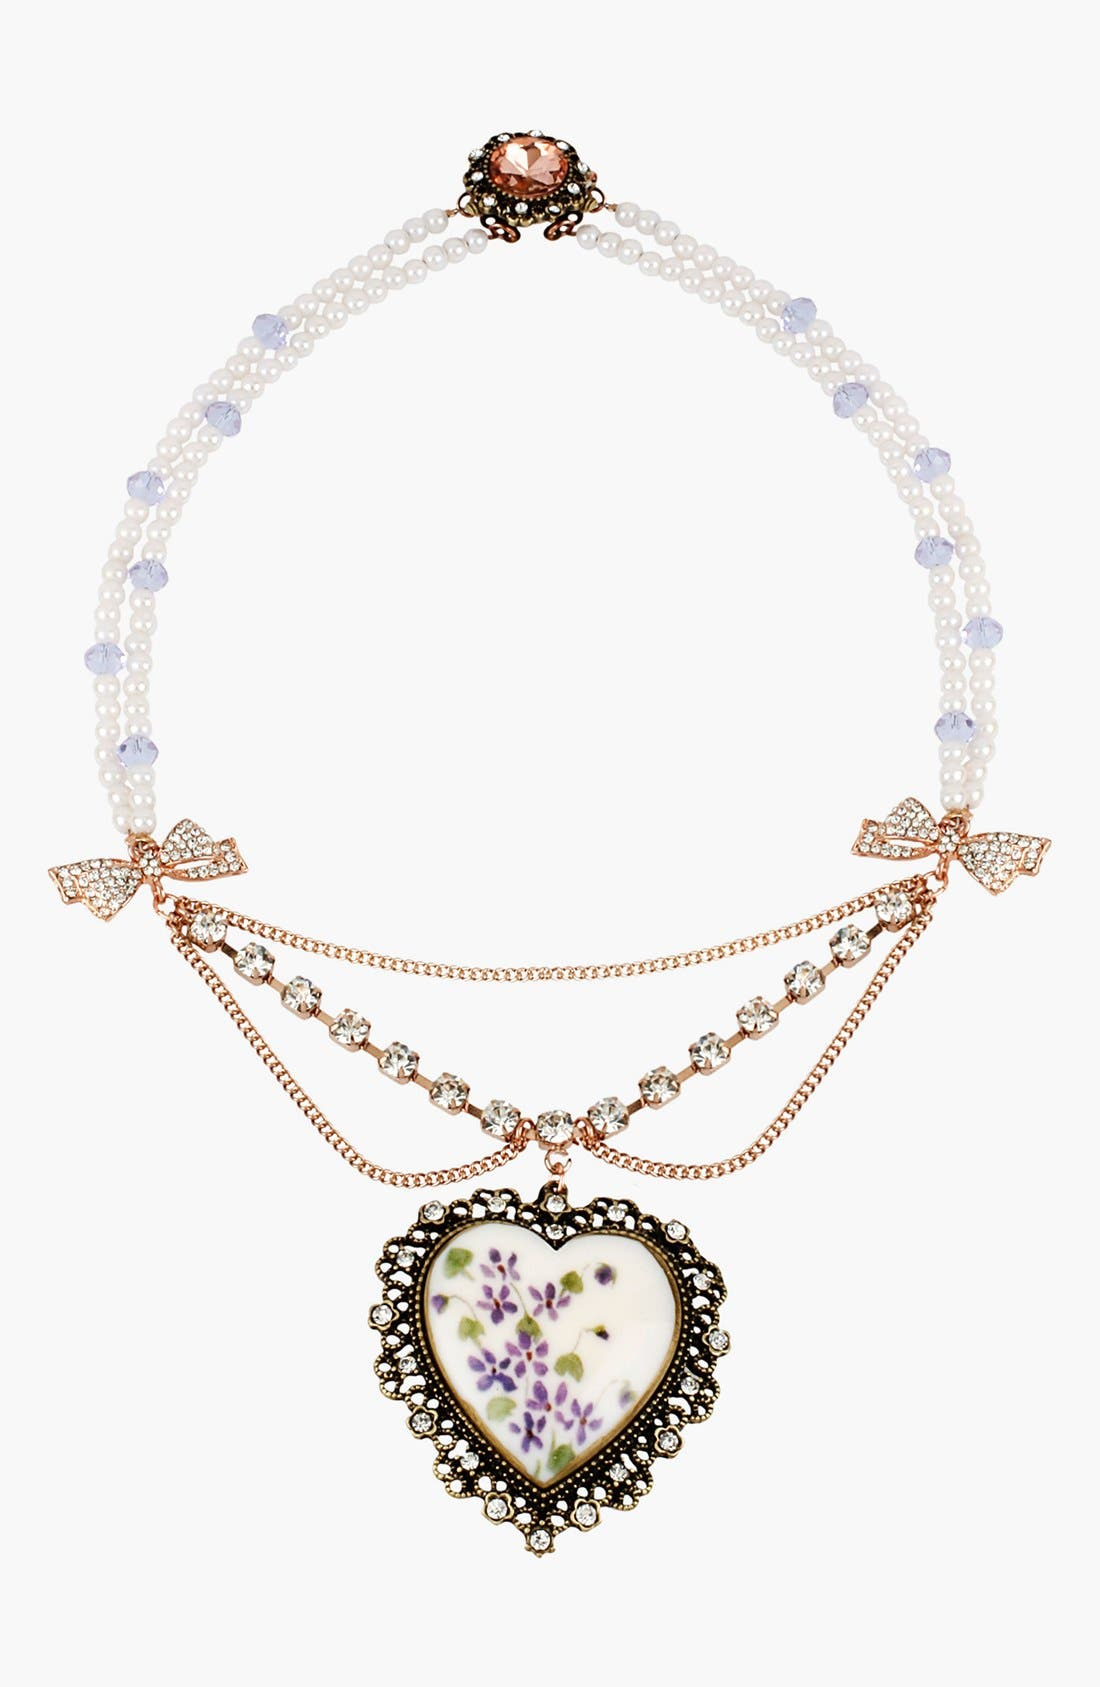 Main Image - Betsey Johnson 'Vintage Bow' Heart Pendant Necklace